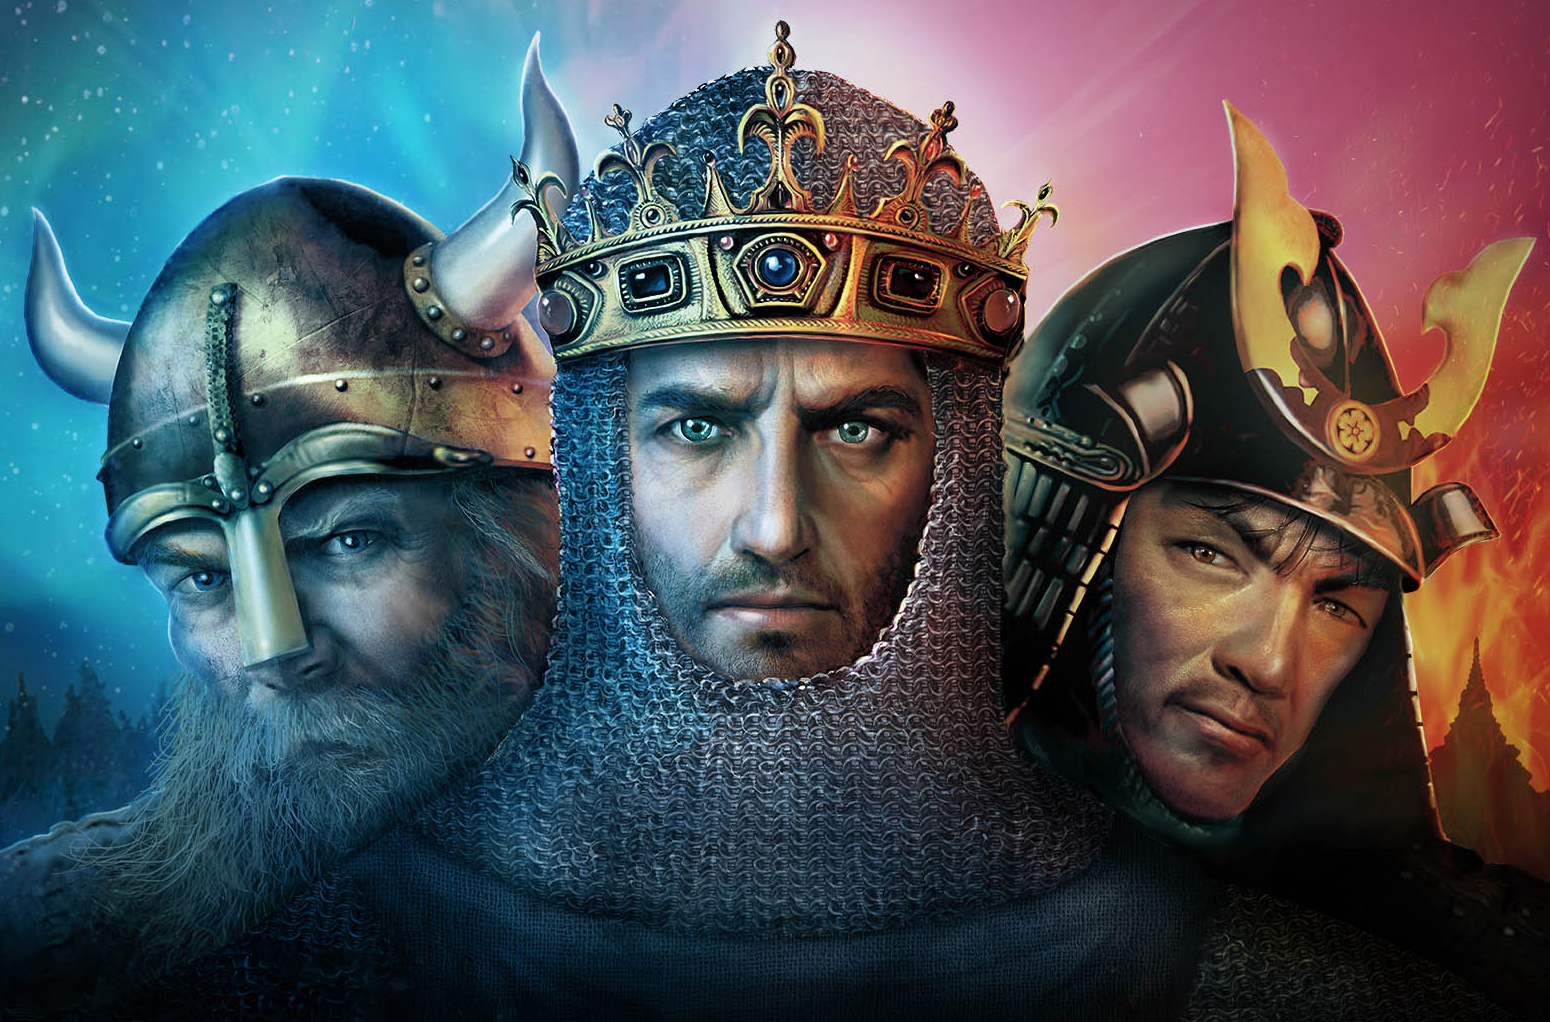 Come giocare ad Age Of Empires online